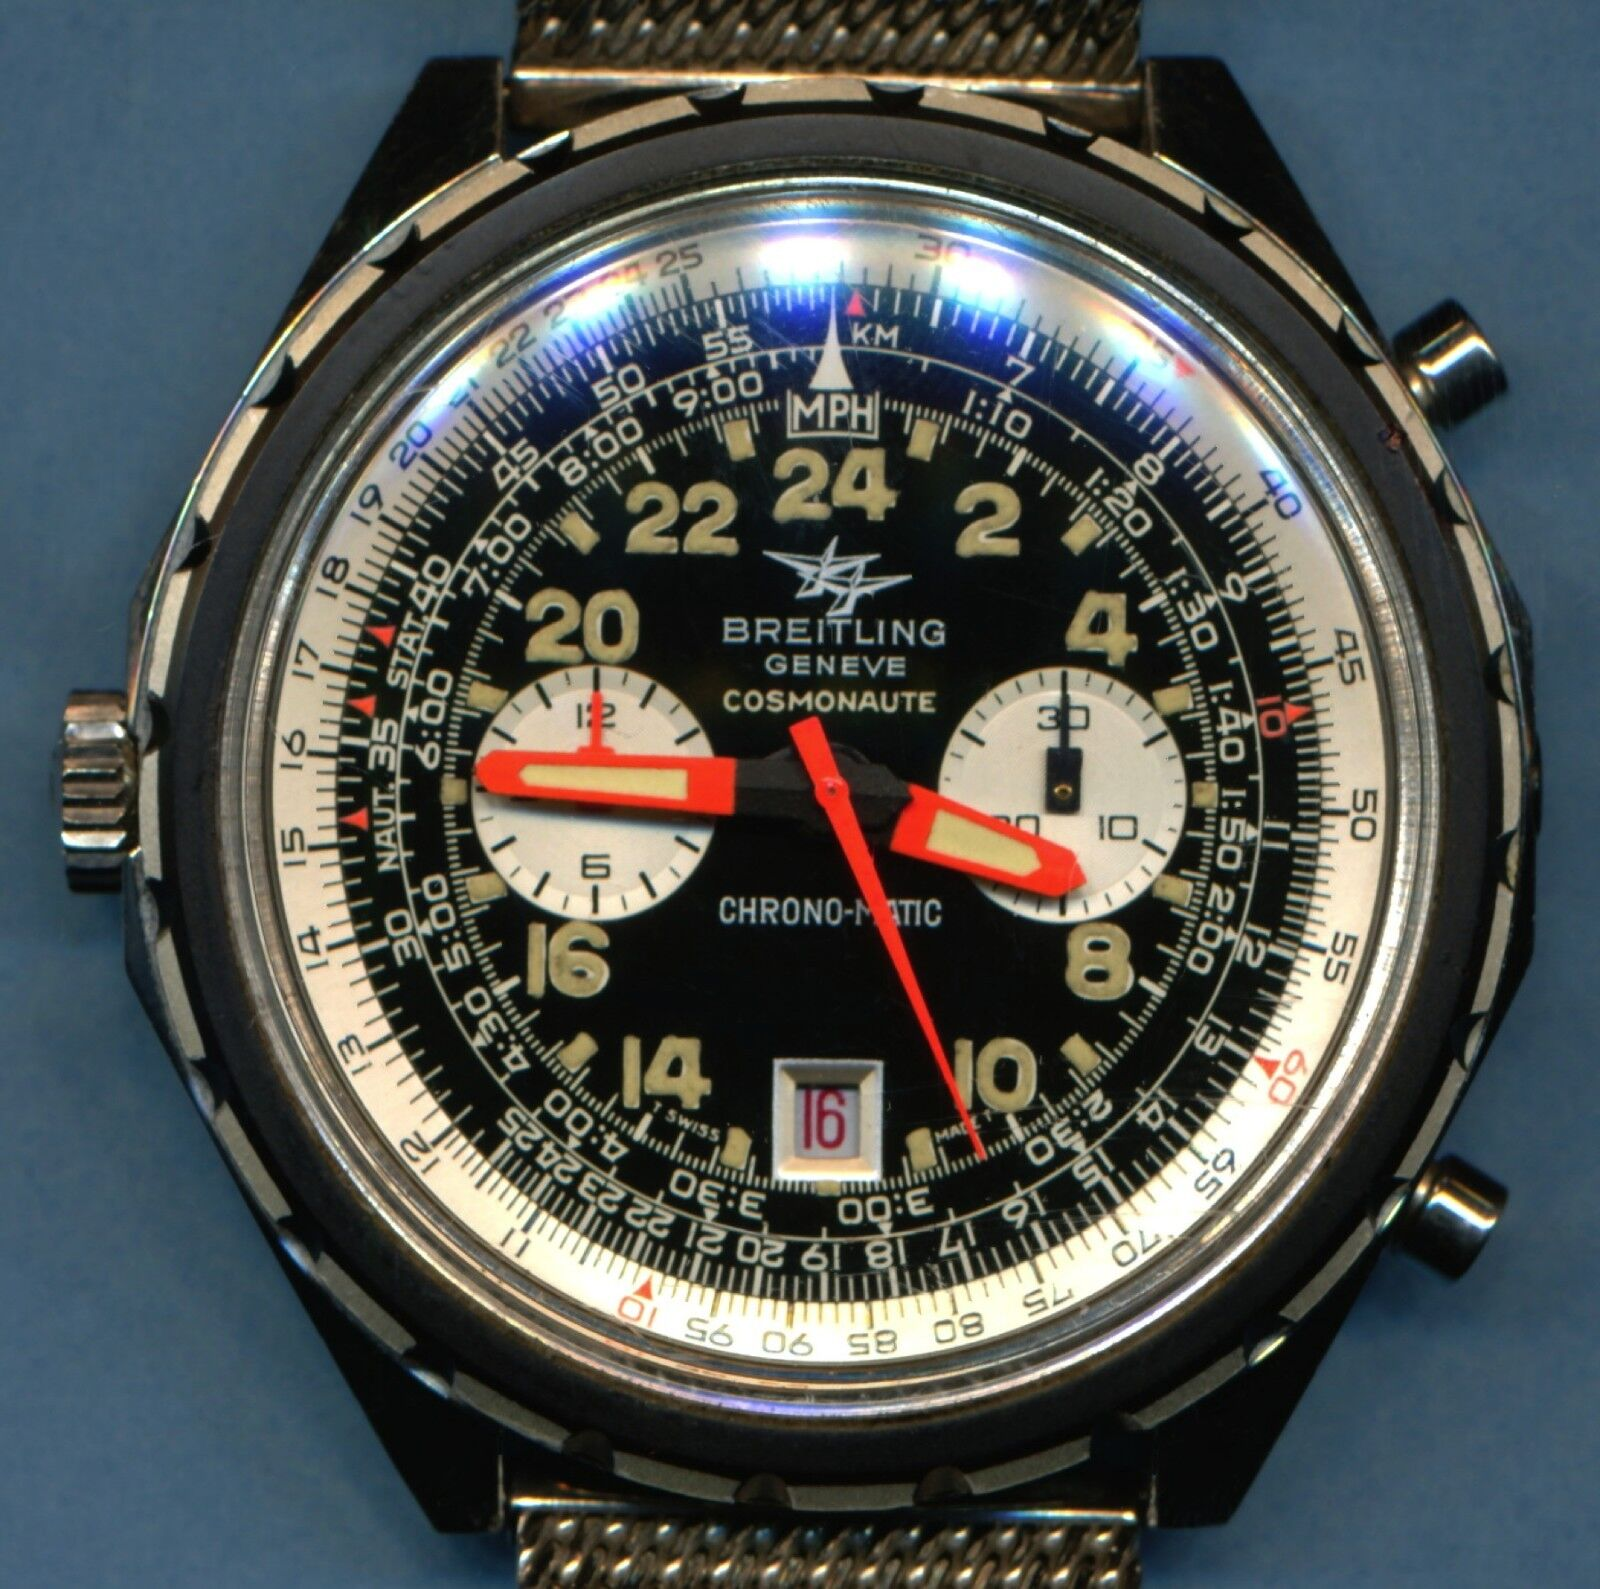 EXCEPTIONAL HUGE NEAR MINT VINTAGE 1970 BREITLING 1809 COSMOANUTE CHRONOGRAPH - watch picture 1